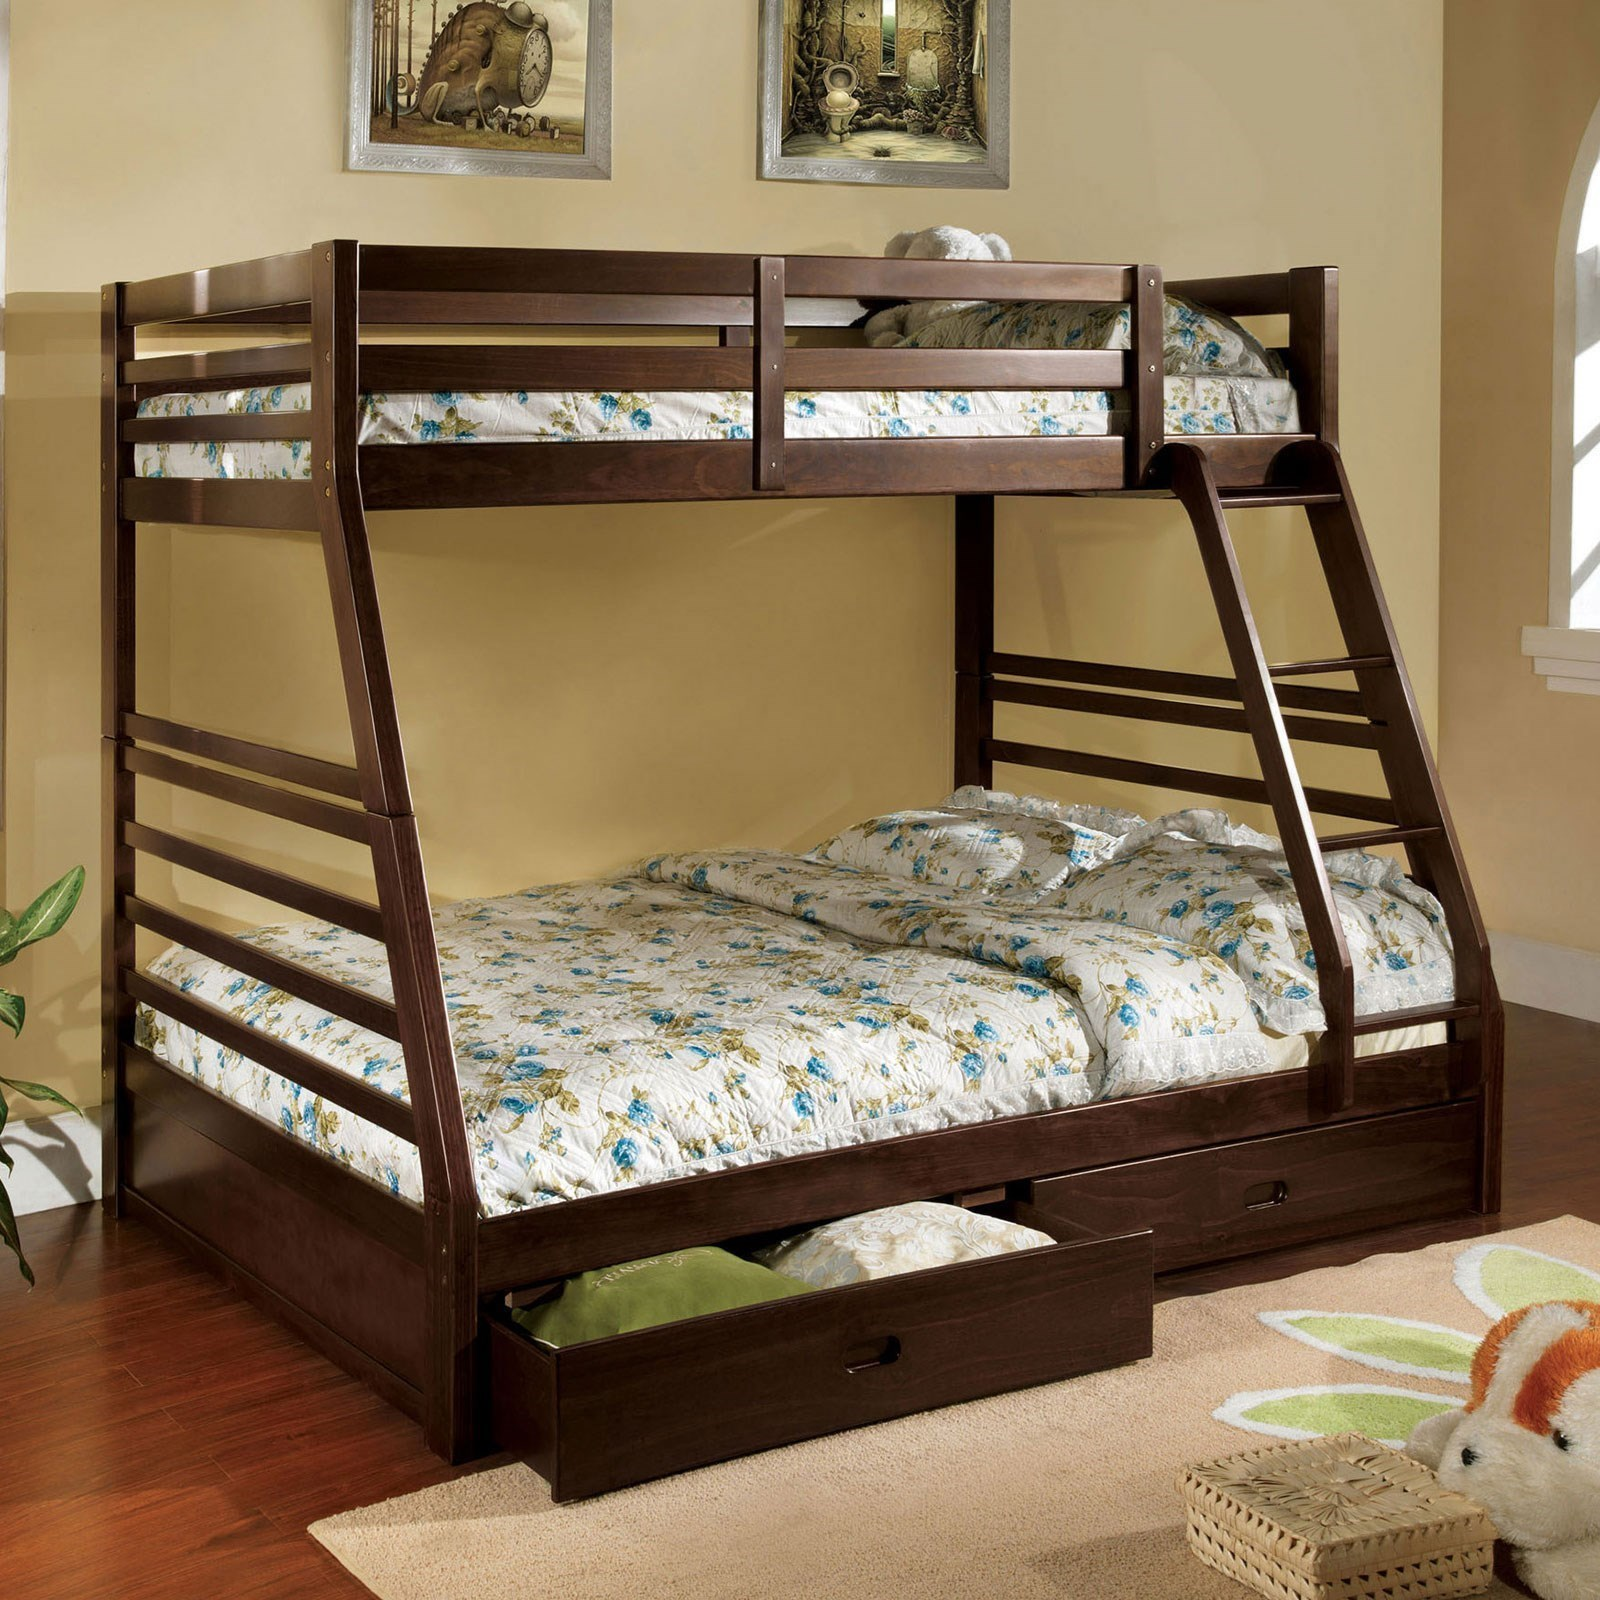 Picture of: Furniture Of America California Iii Cm Bk588ex Bed Twin Over Full Bunk Bed With 2 Drawers Sam Levitz Furniture Bunk Beds